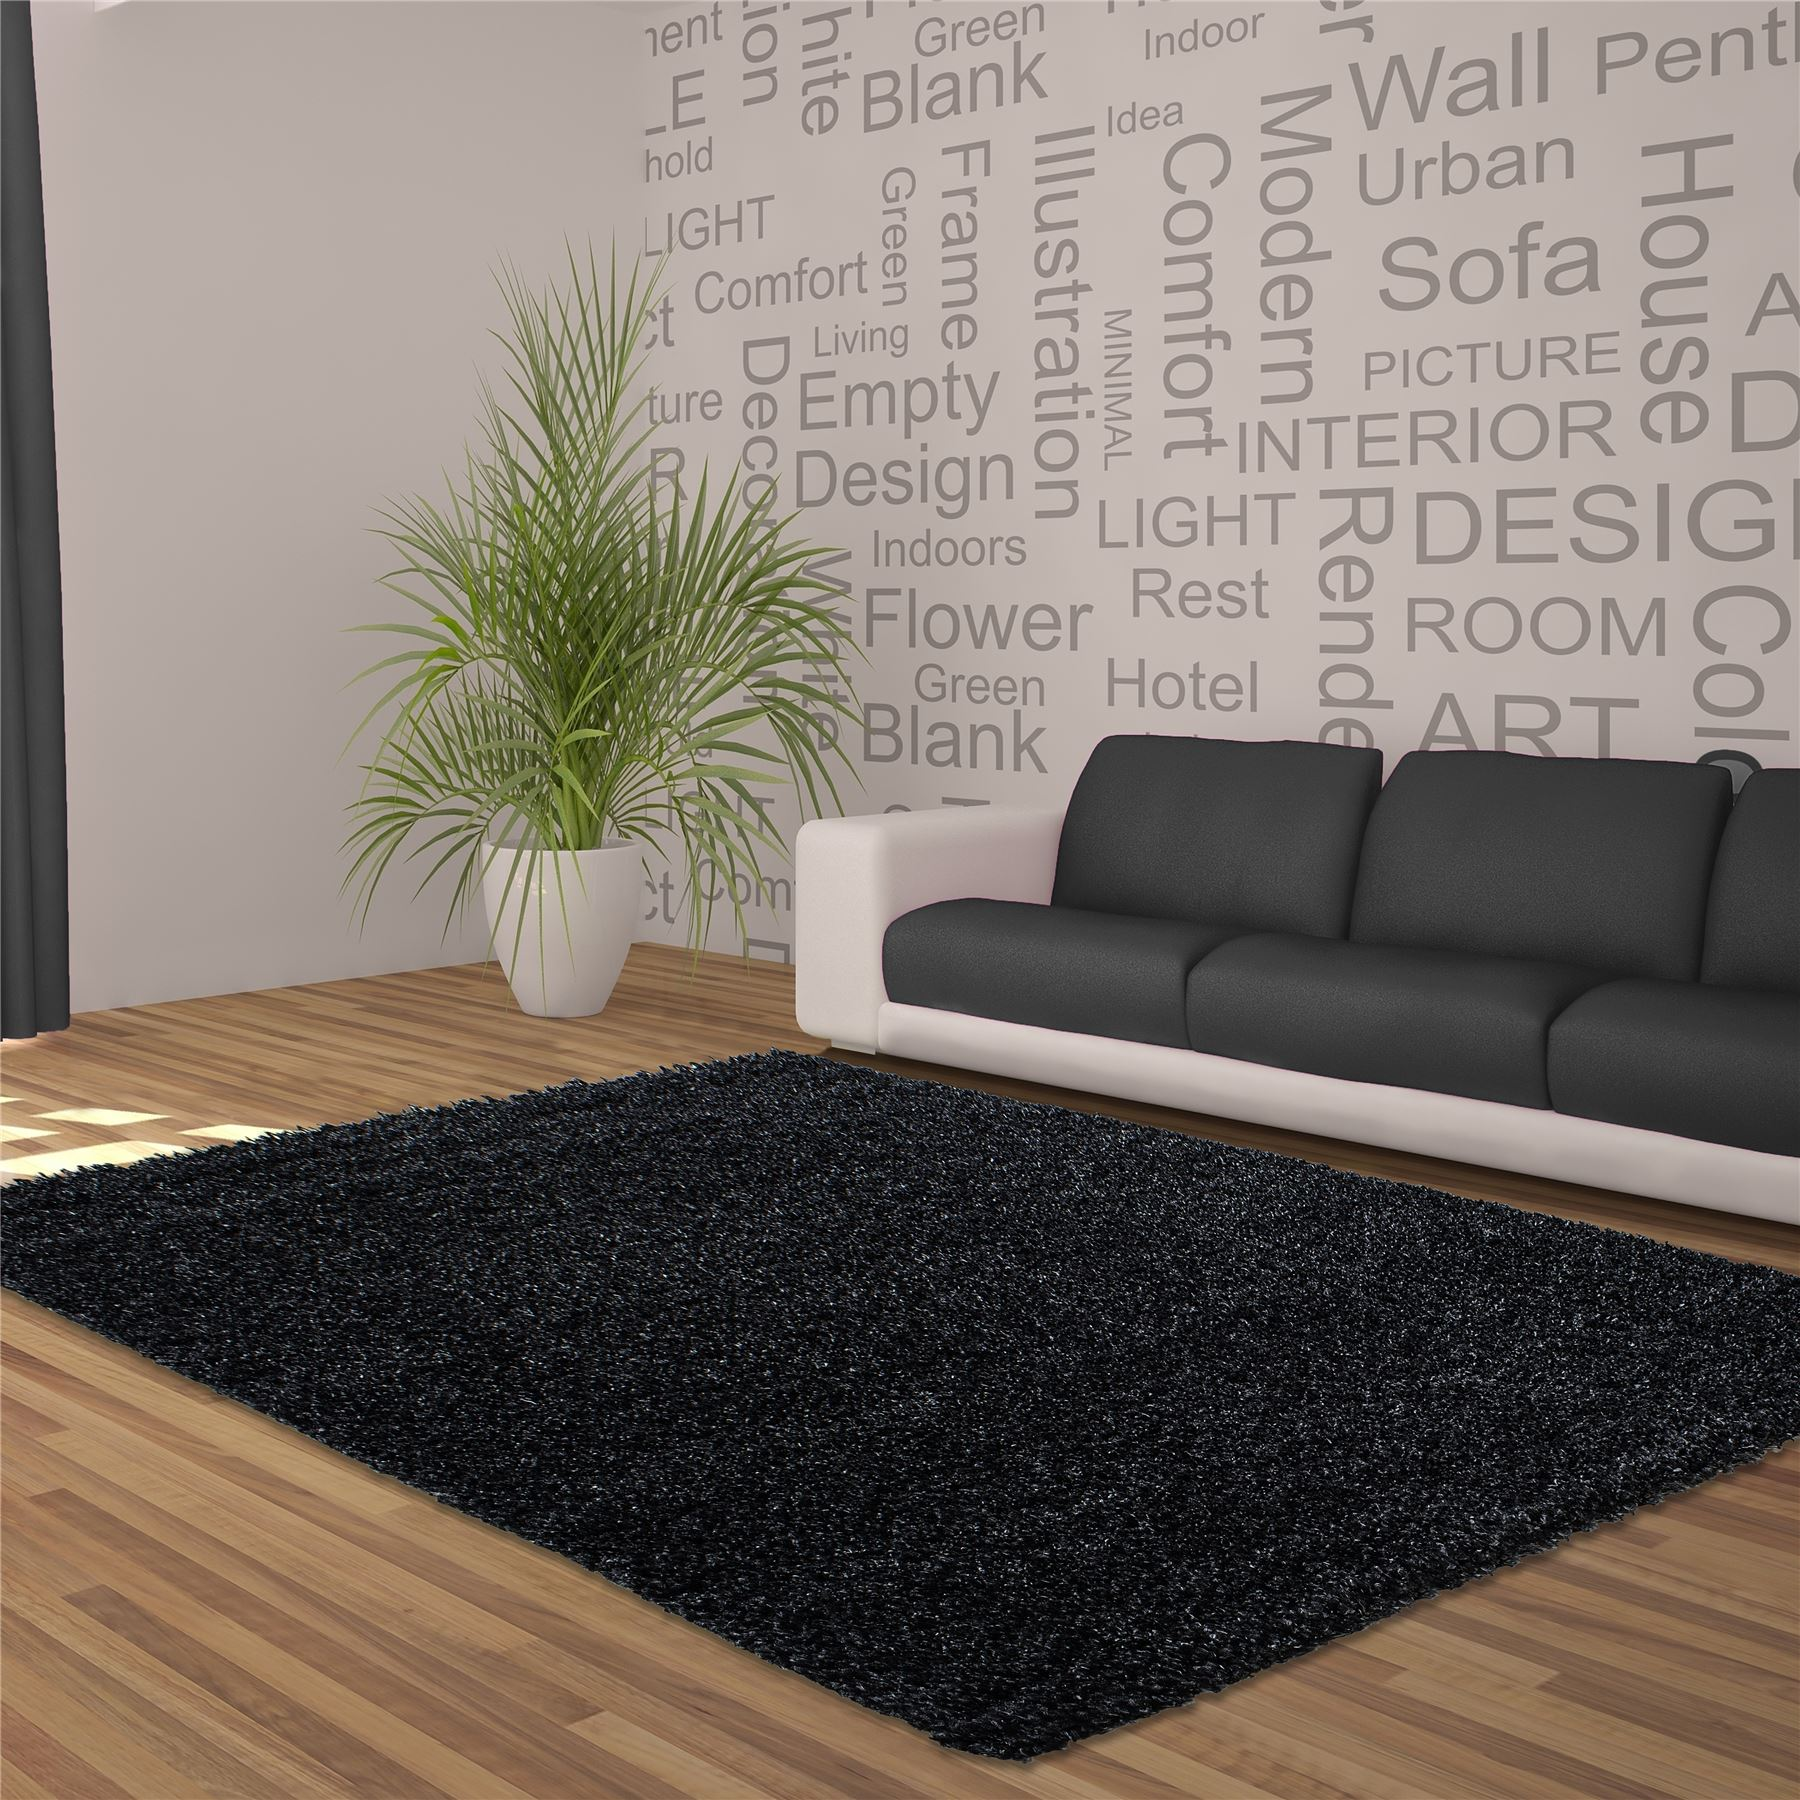 5cm Thick Soft Touch Shaggy Shag Pile Rugs